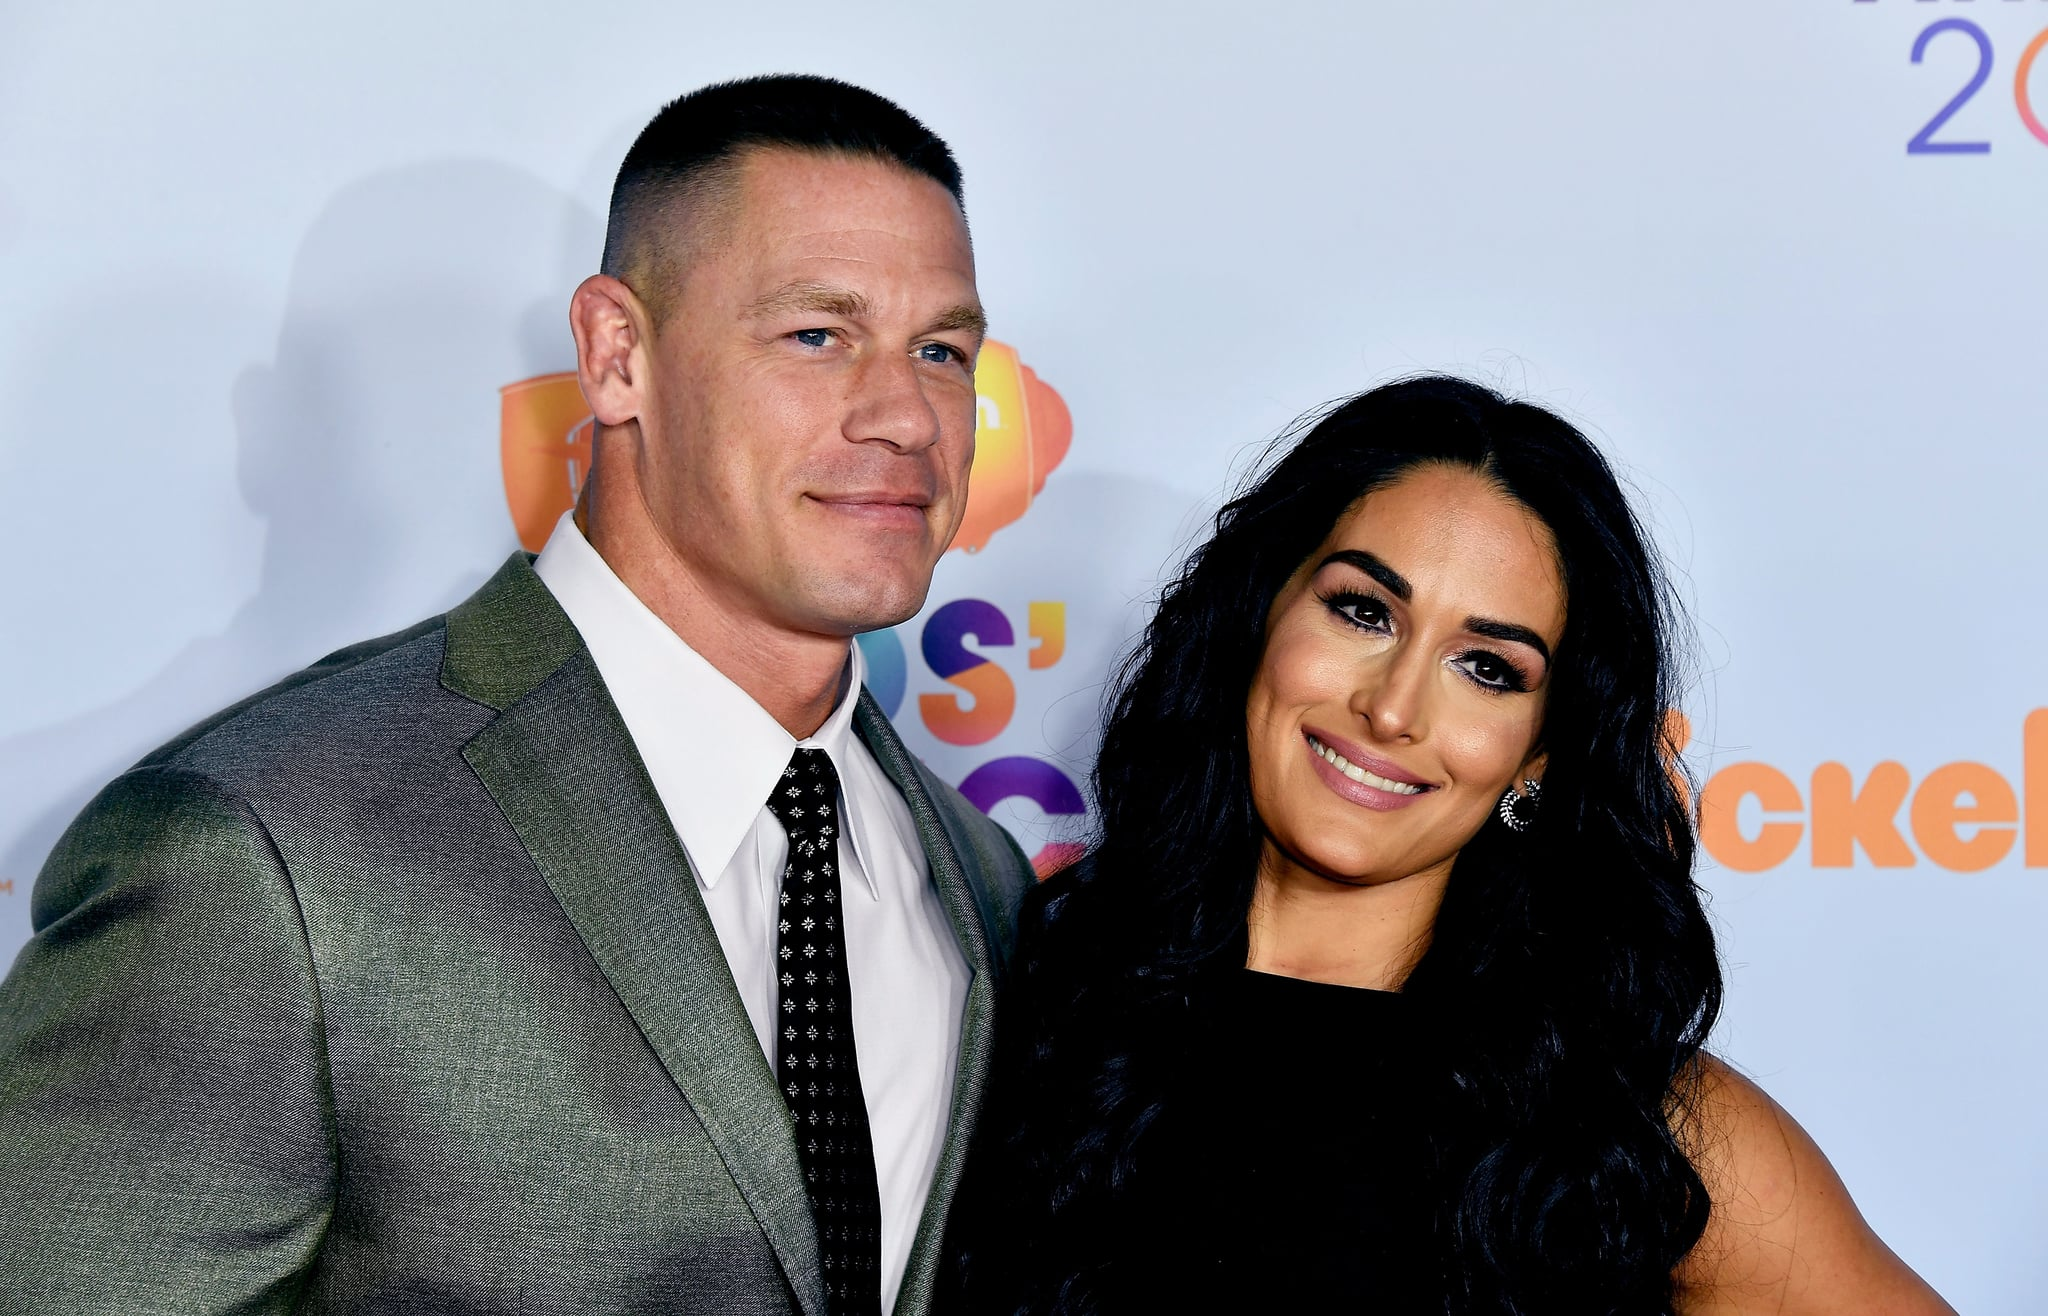 """nikki-bella-looking-forward-to-finding-love-in-2019-heres-why-she-doesnt-want-to-date-another-star-like-john-cena"""